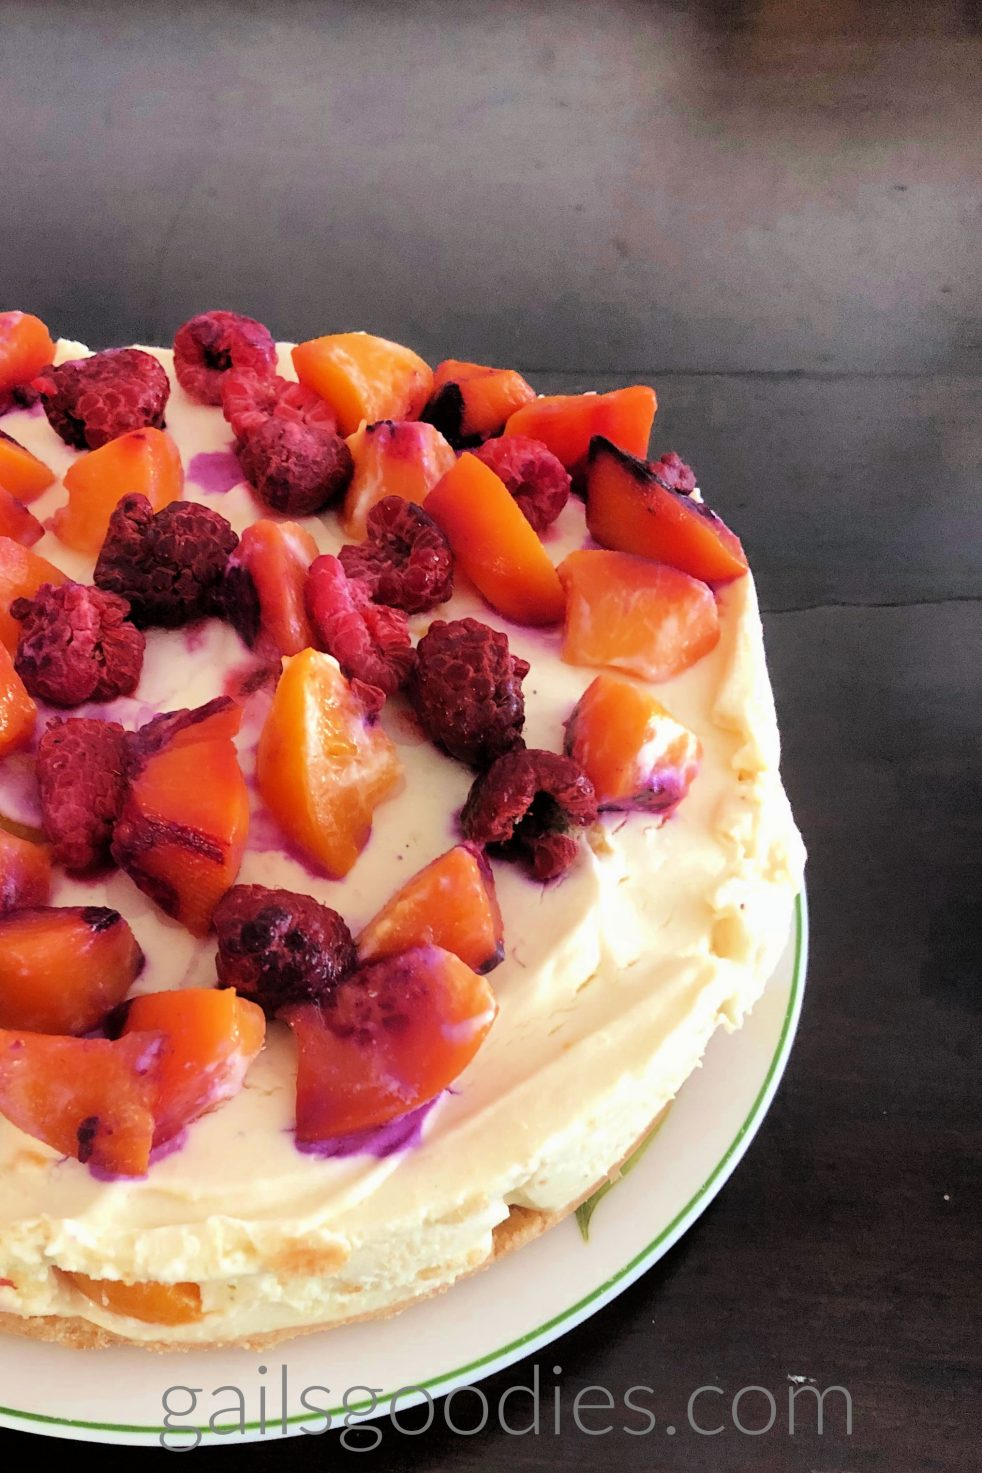 The right side of a peach melba cheesecake . The creamy filling is dotted with peaches. The top is covered in peaches and raspberries.